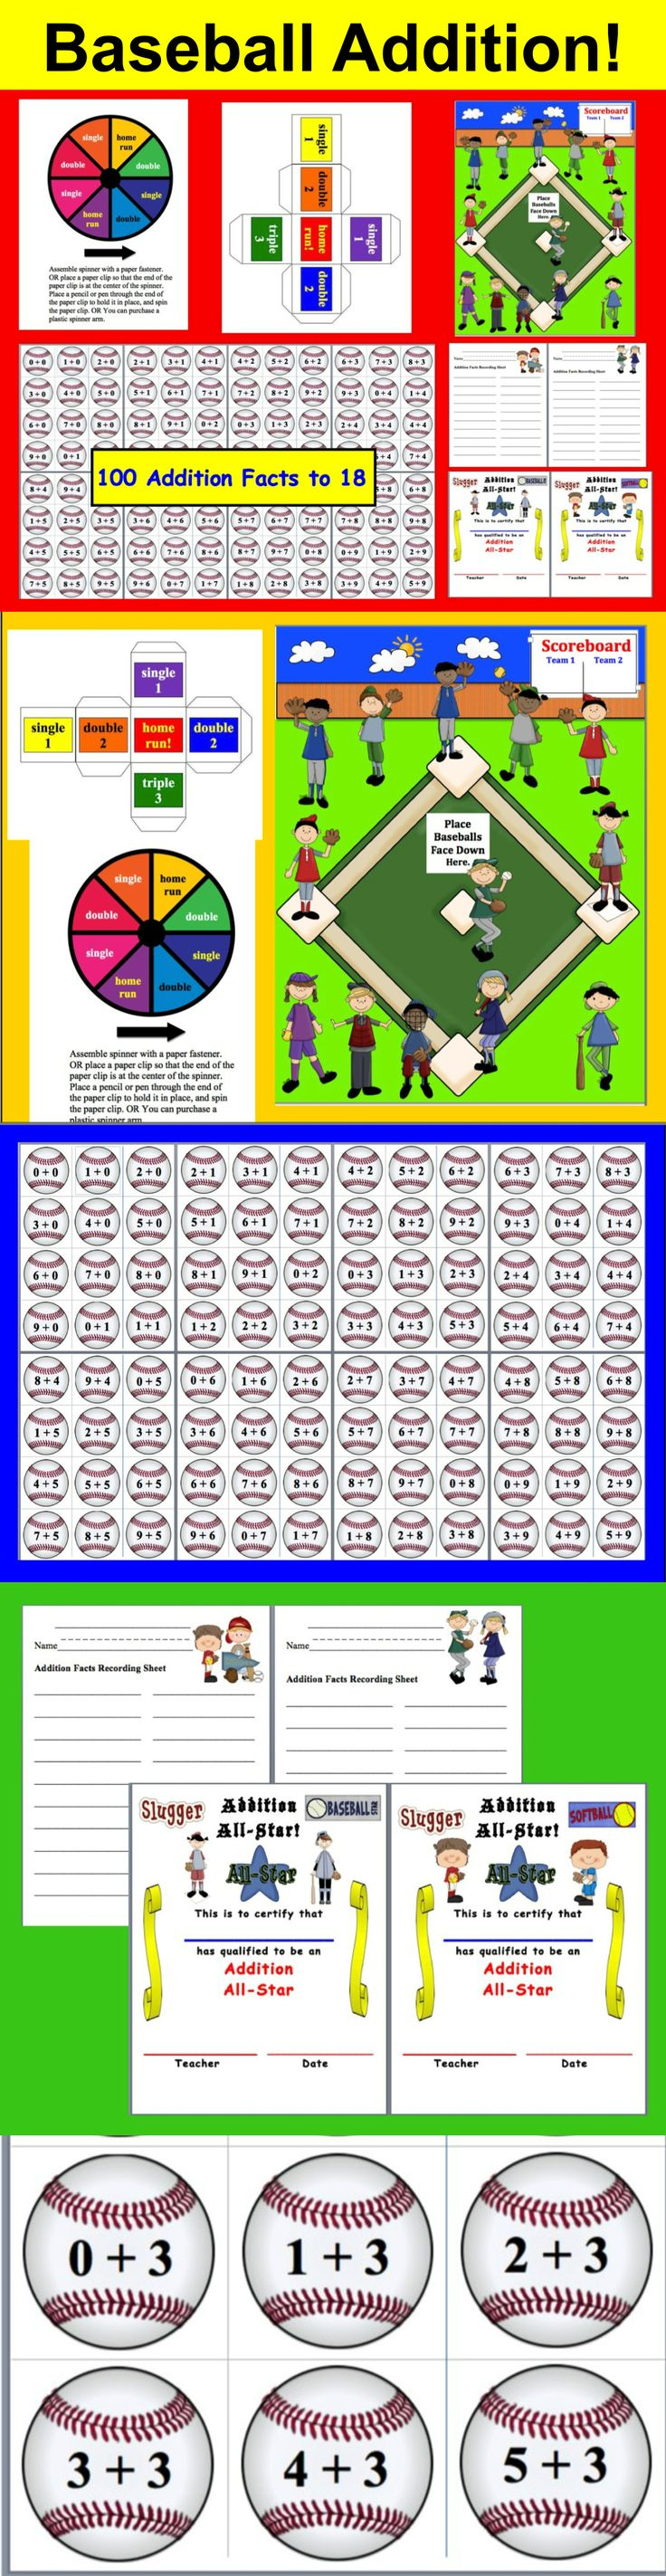 $3.25 Addition Facts Baseball -  31 Page Download - 100 addition facts to 18 on baseballs.   Prints nicely in black and white as well.   optional recording sheets and 2 Addition All-Star Awards.  File also contains  2 sizes of Game board (9x12 and 12x18),  2 sizes of baseball dice and a baseball spinner.